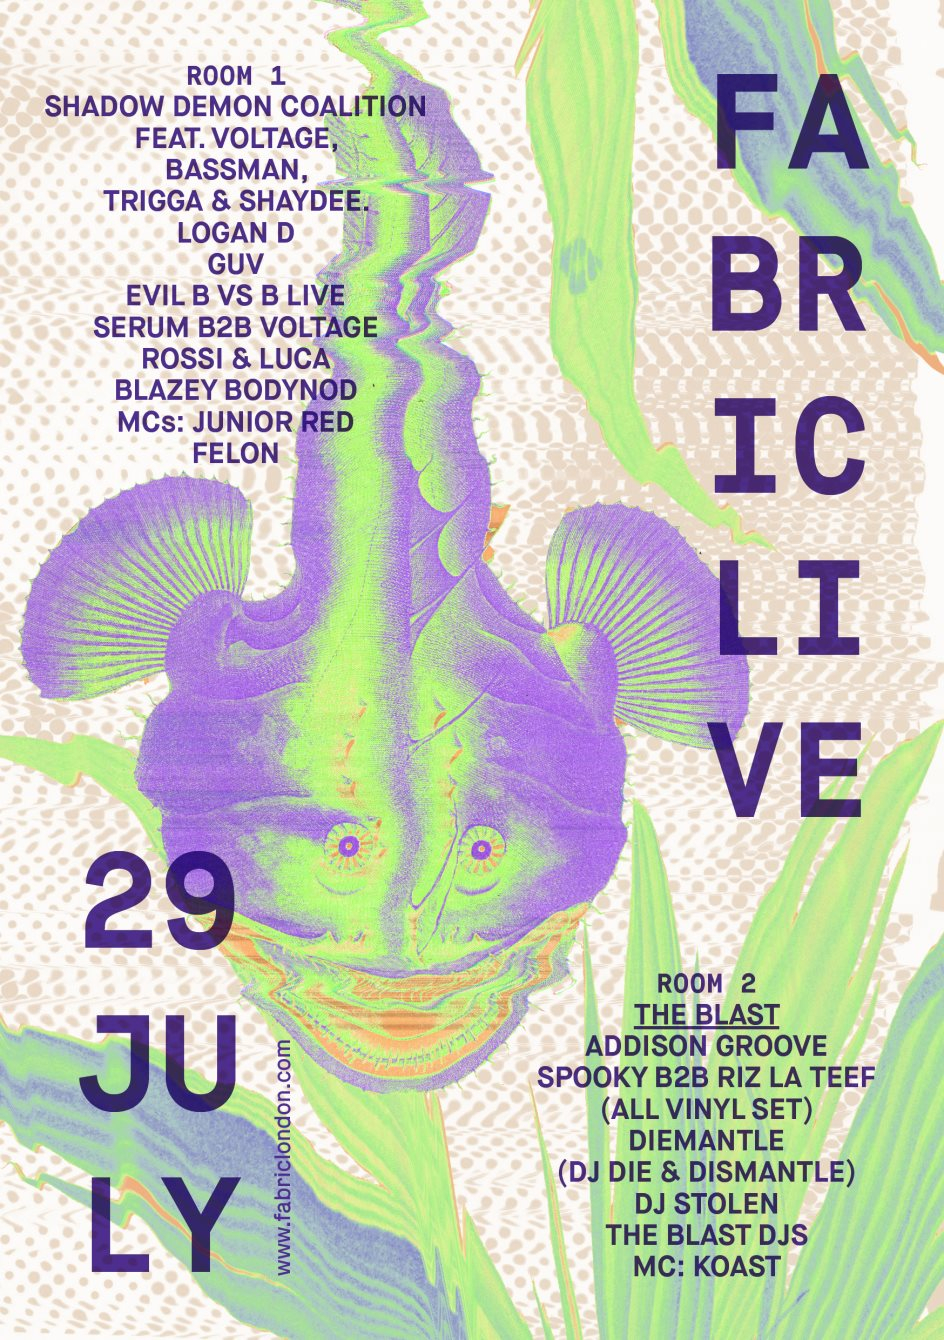 Ra Fabriclive Shadow Demon Coalition With Voltage